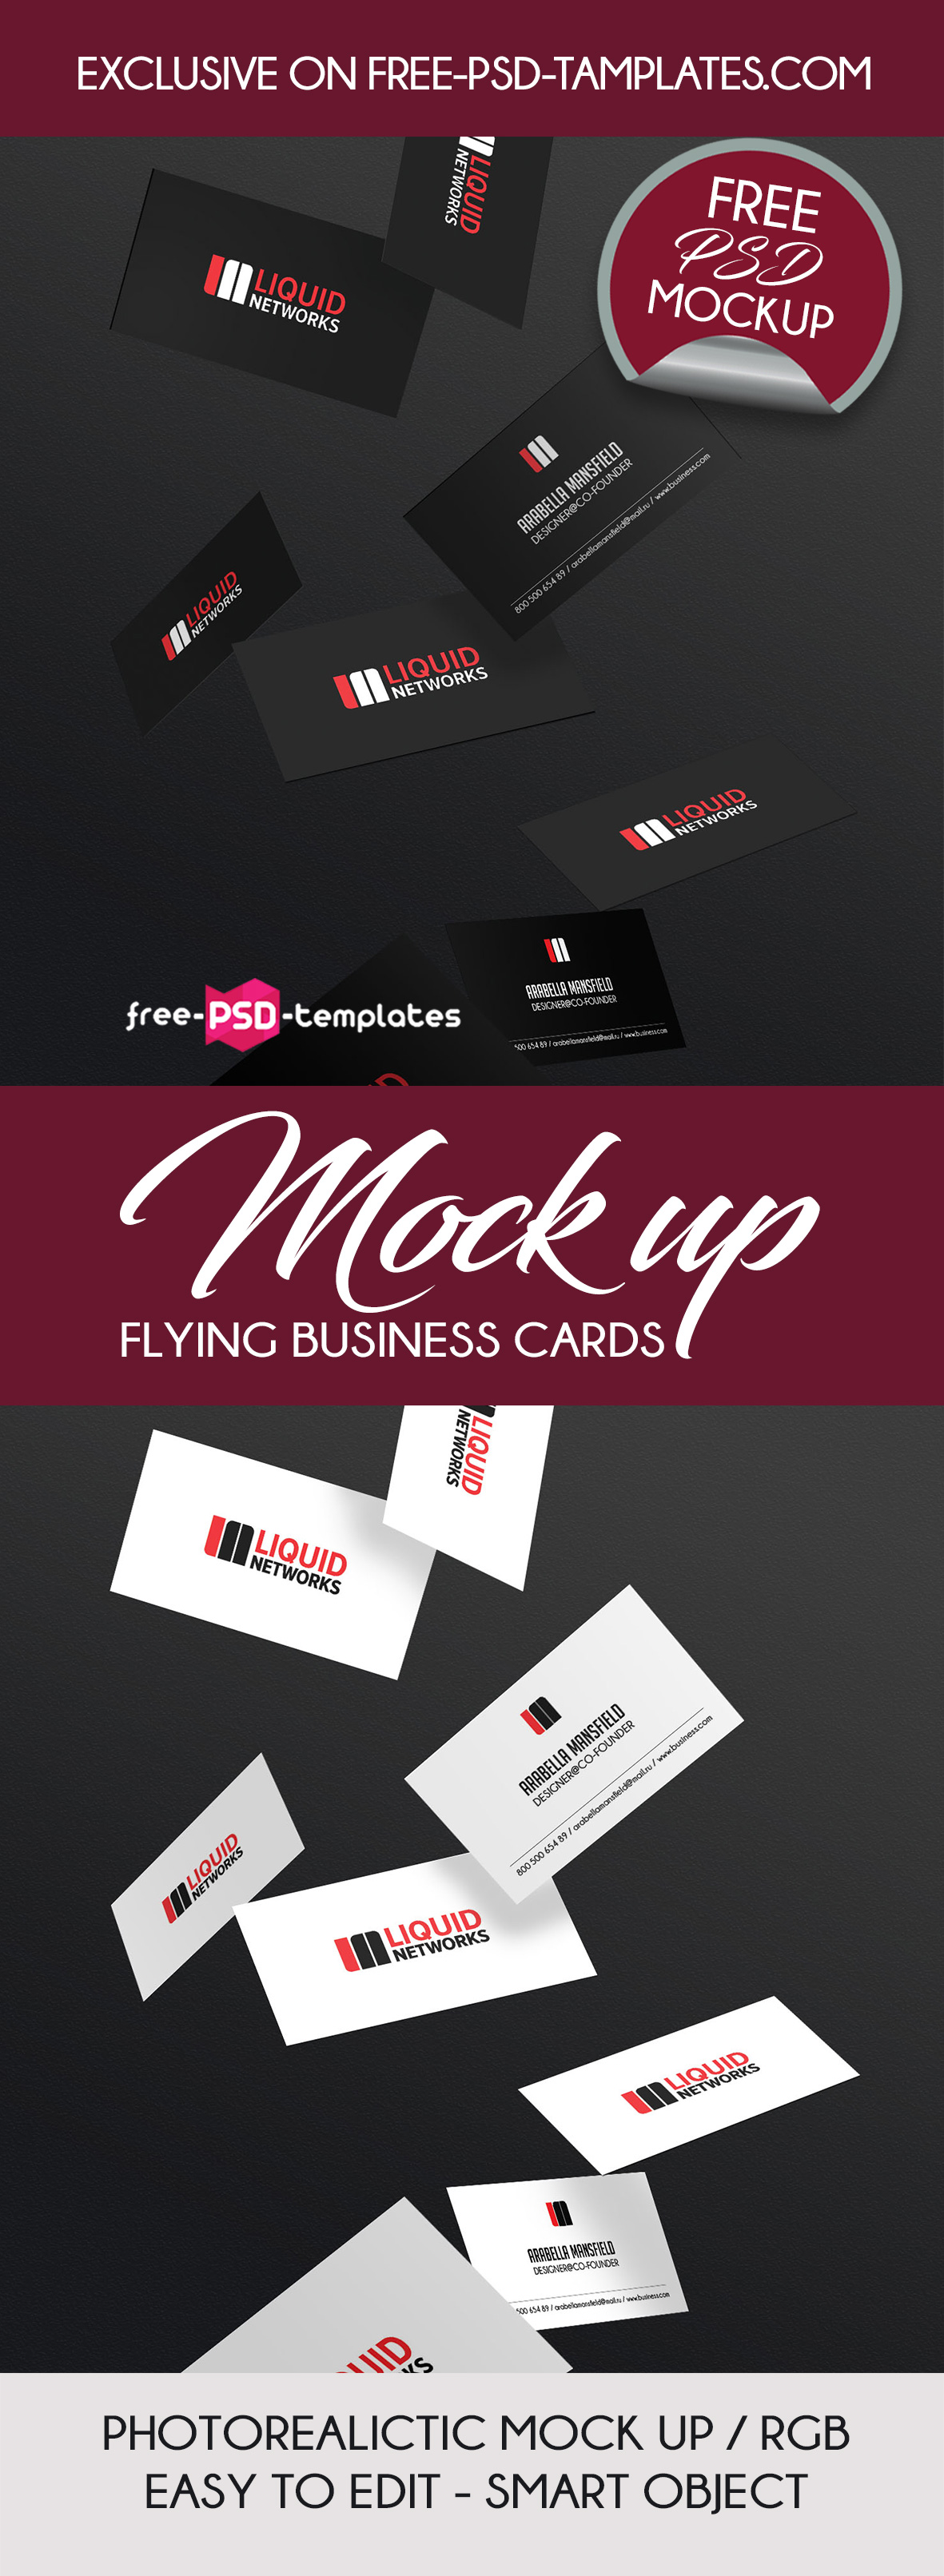 mock up flying business card psd template